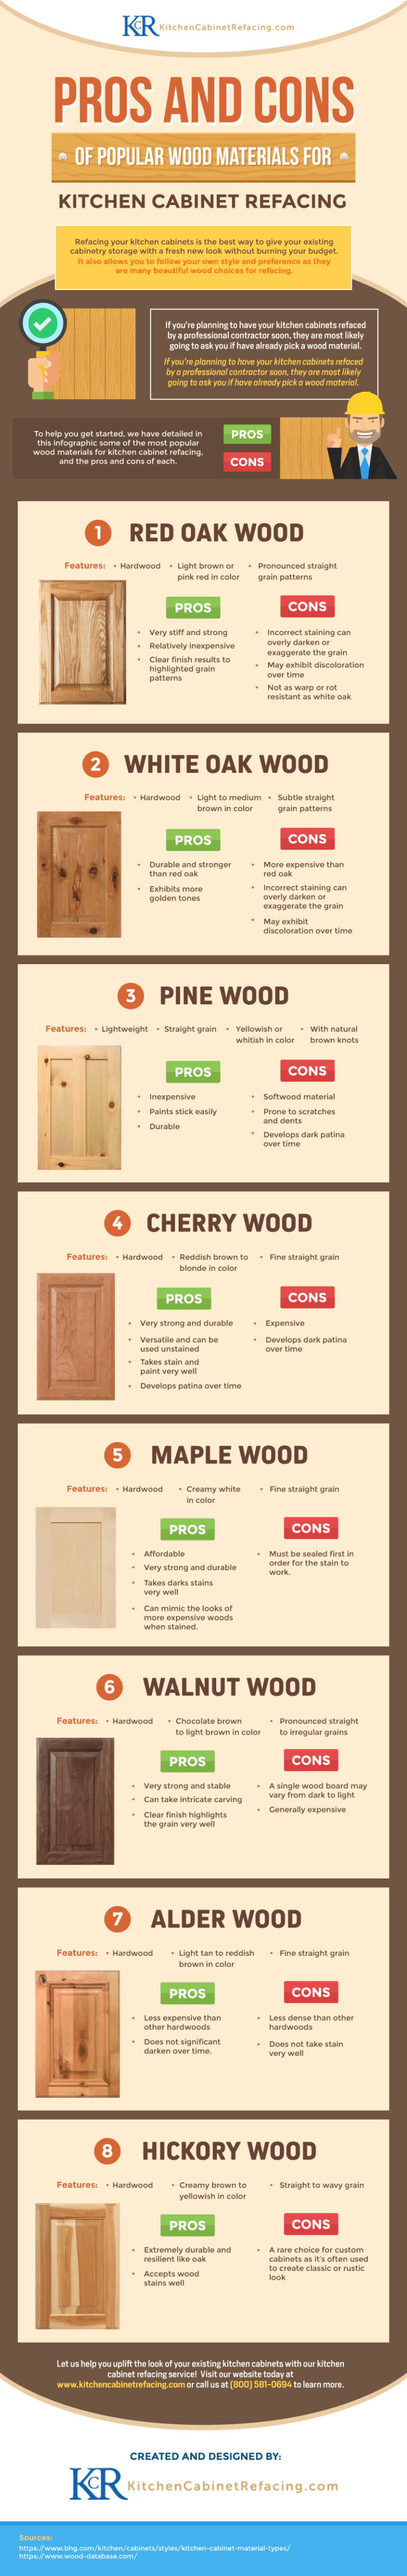 popular kitchen cabinet refinishing | Pros and Cons of Popular Wood Materials For Kitchen ...